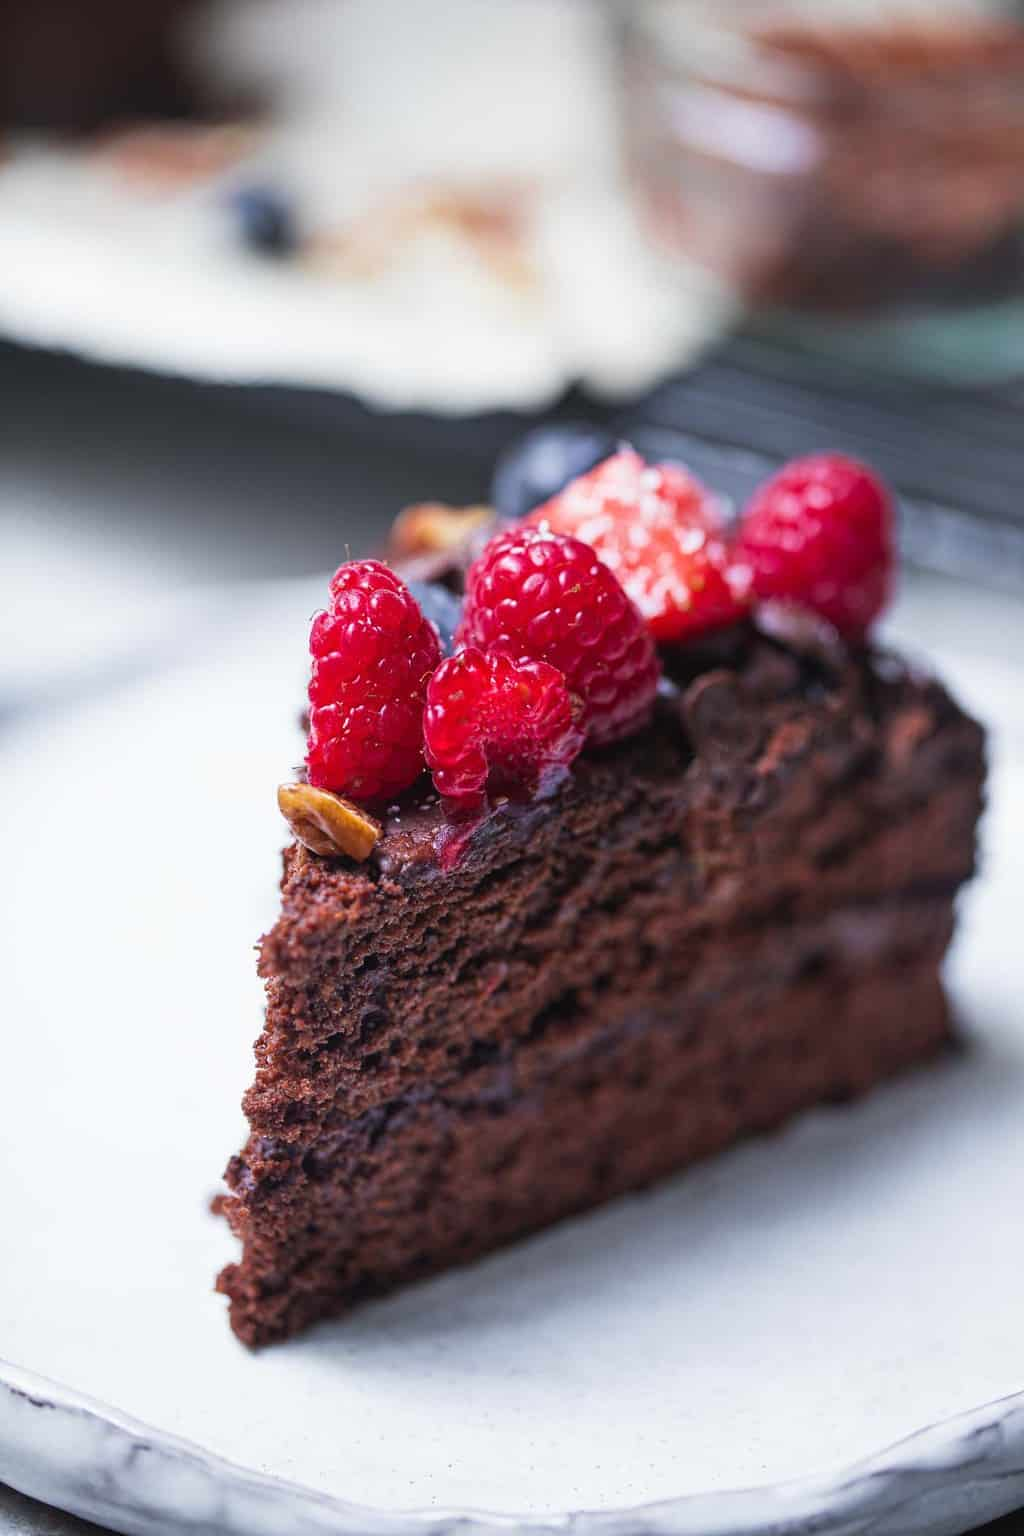 Slice of vegan chocolate cake with berries on a plate